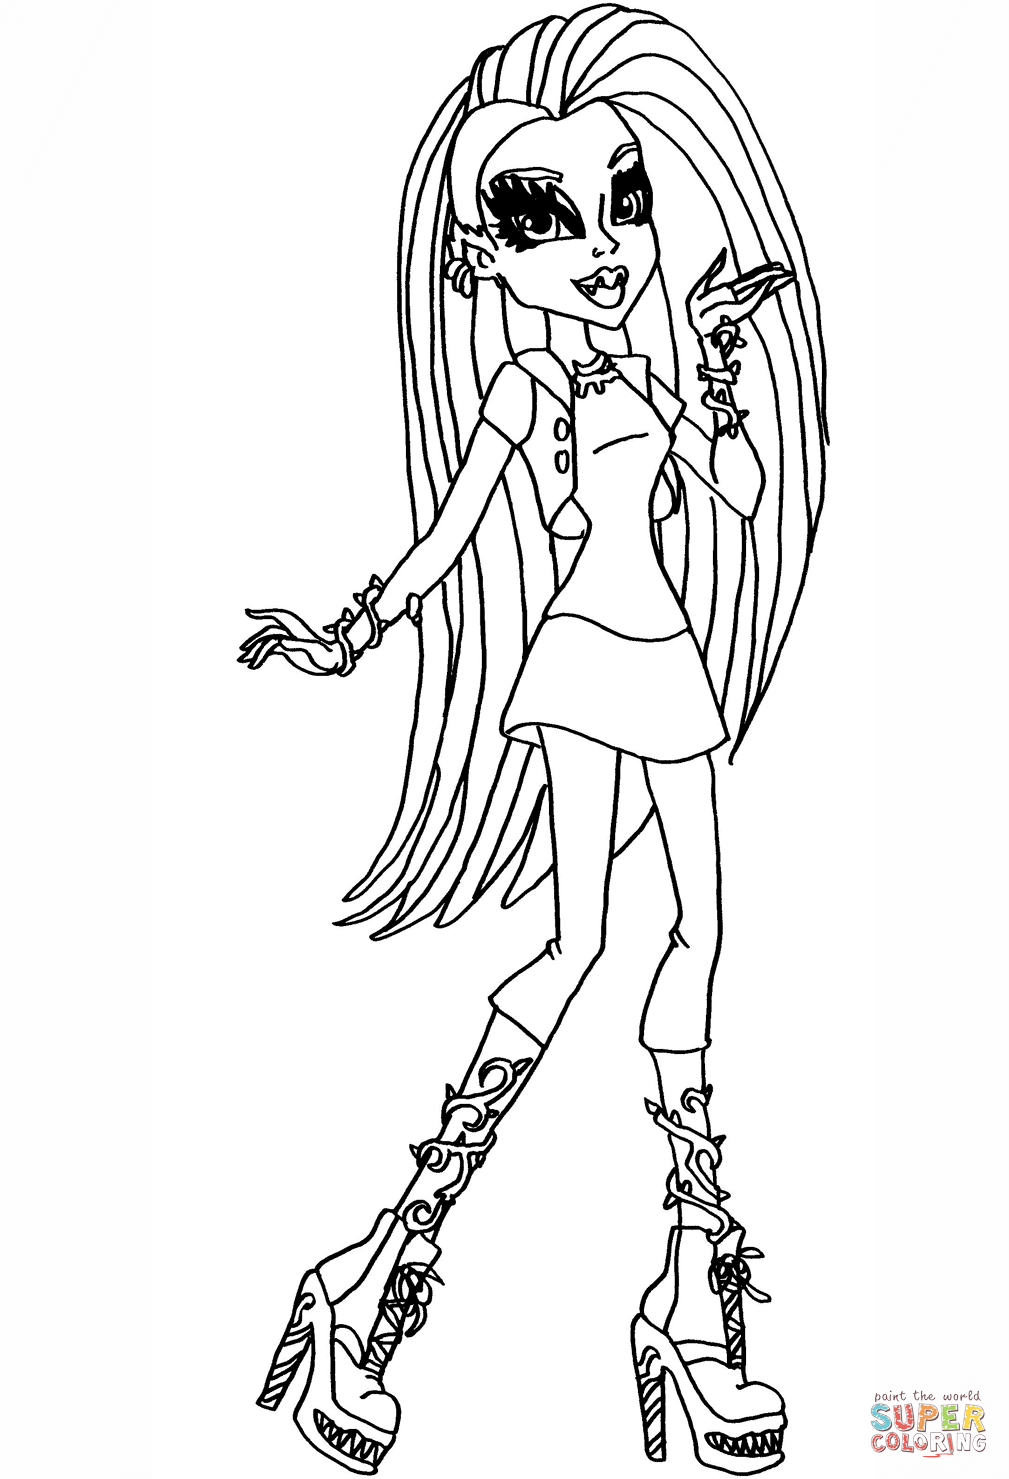 monster high black and white coloring pages venus mcflytrap coloring page free printable coloring pages high black pages white and monster coloring